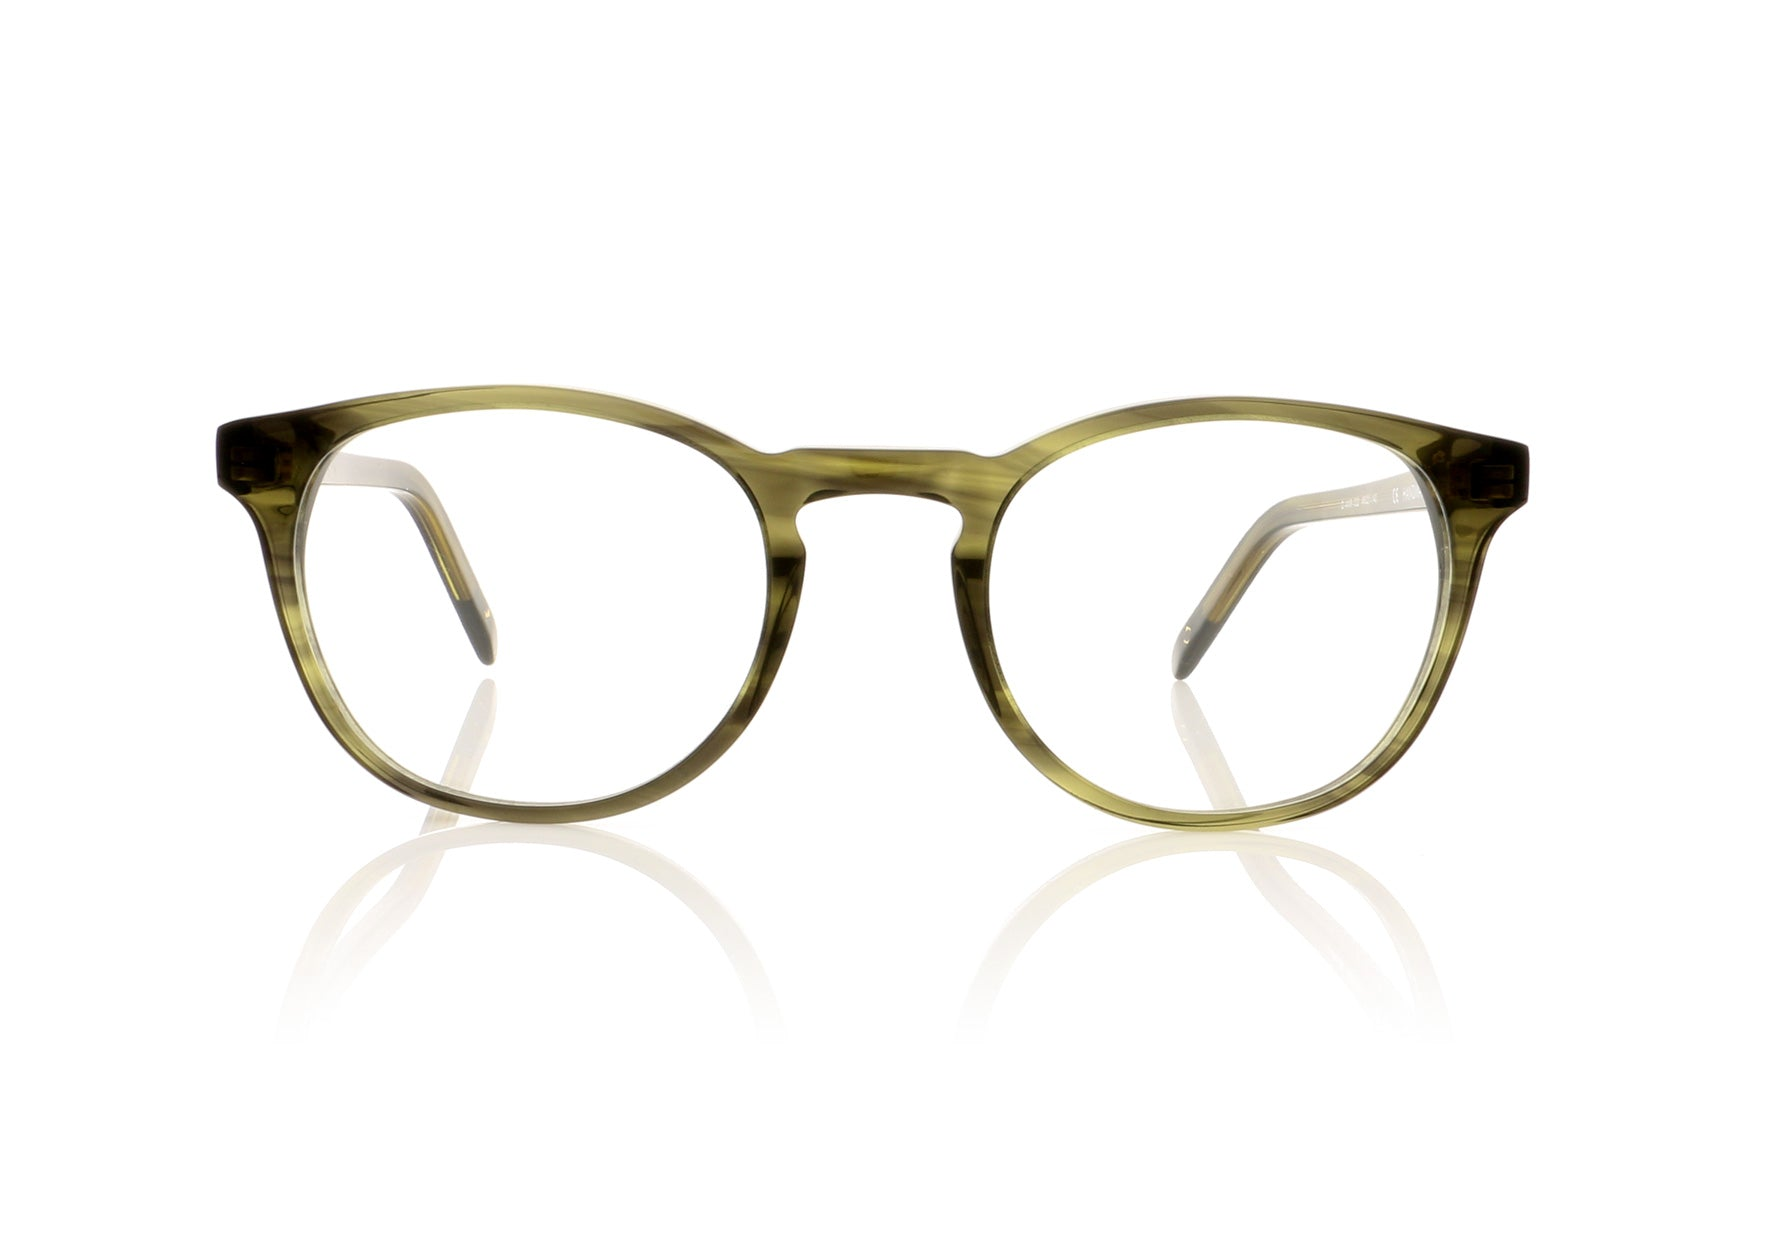 Dick Moby Sustainable Eyewear Sonnenbrille London green leaves s8nrKyP